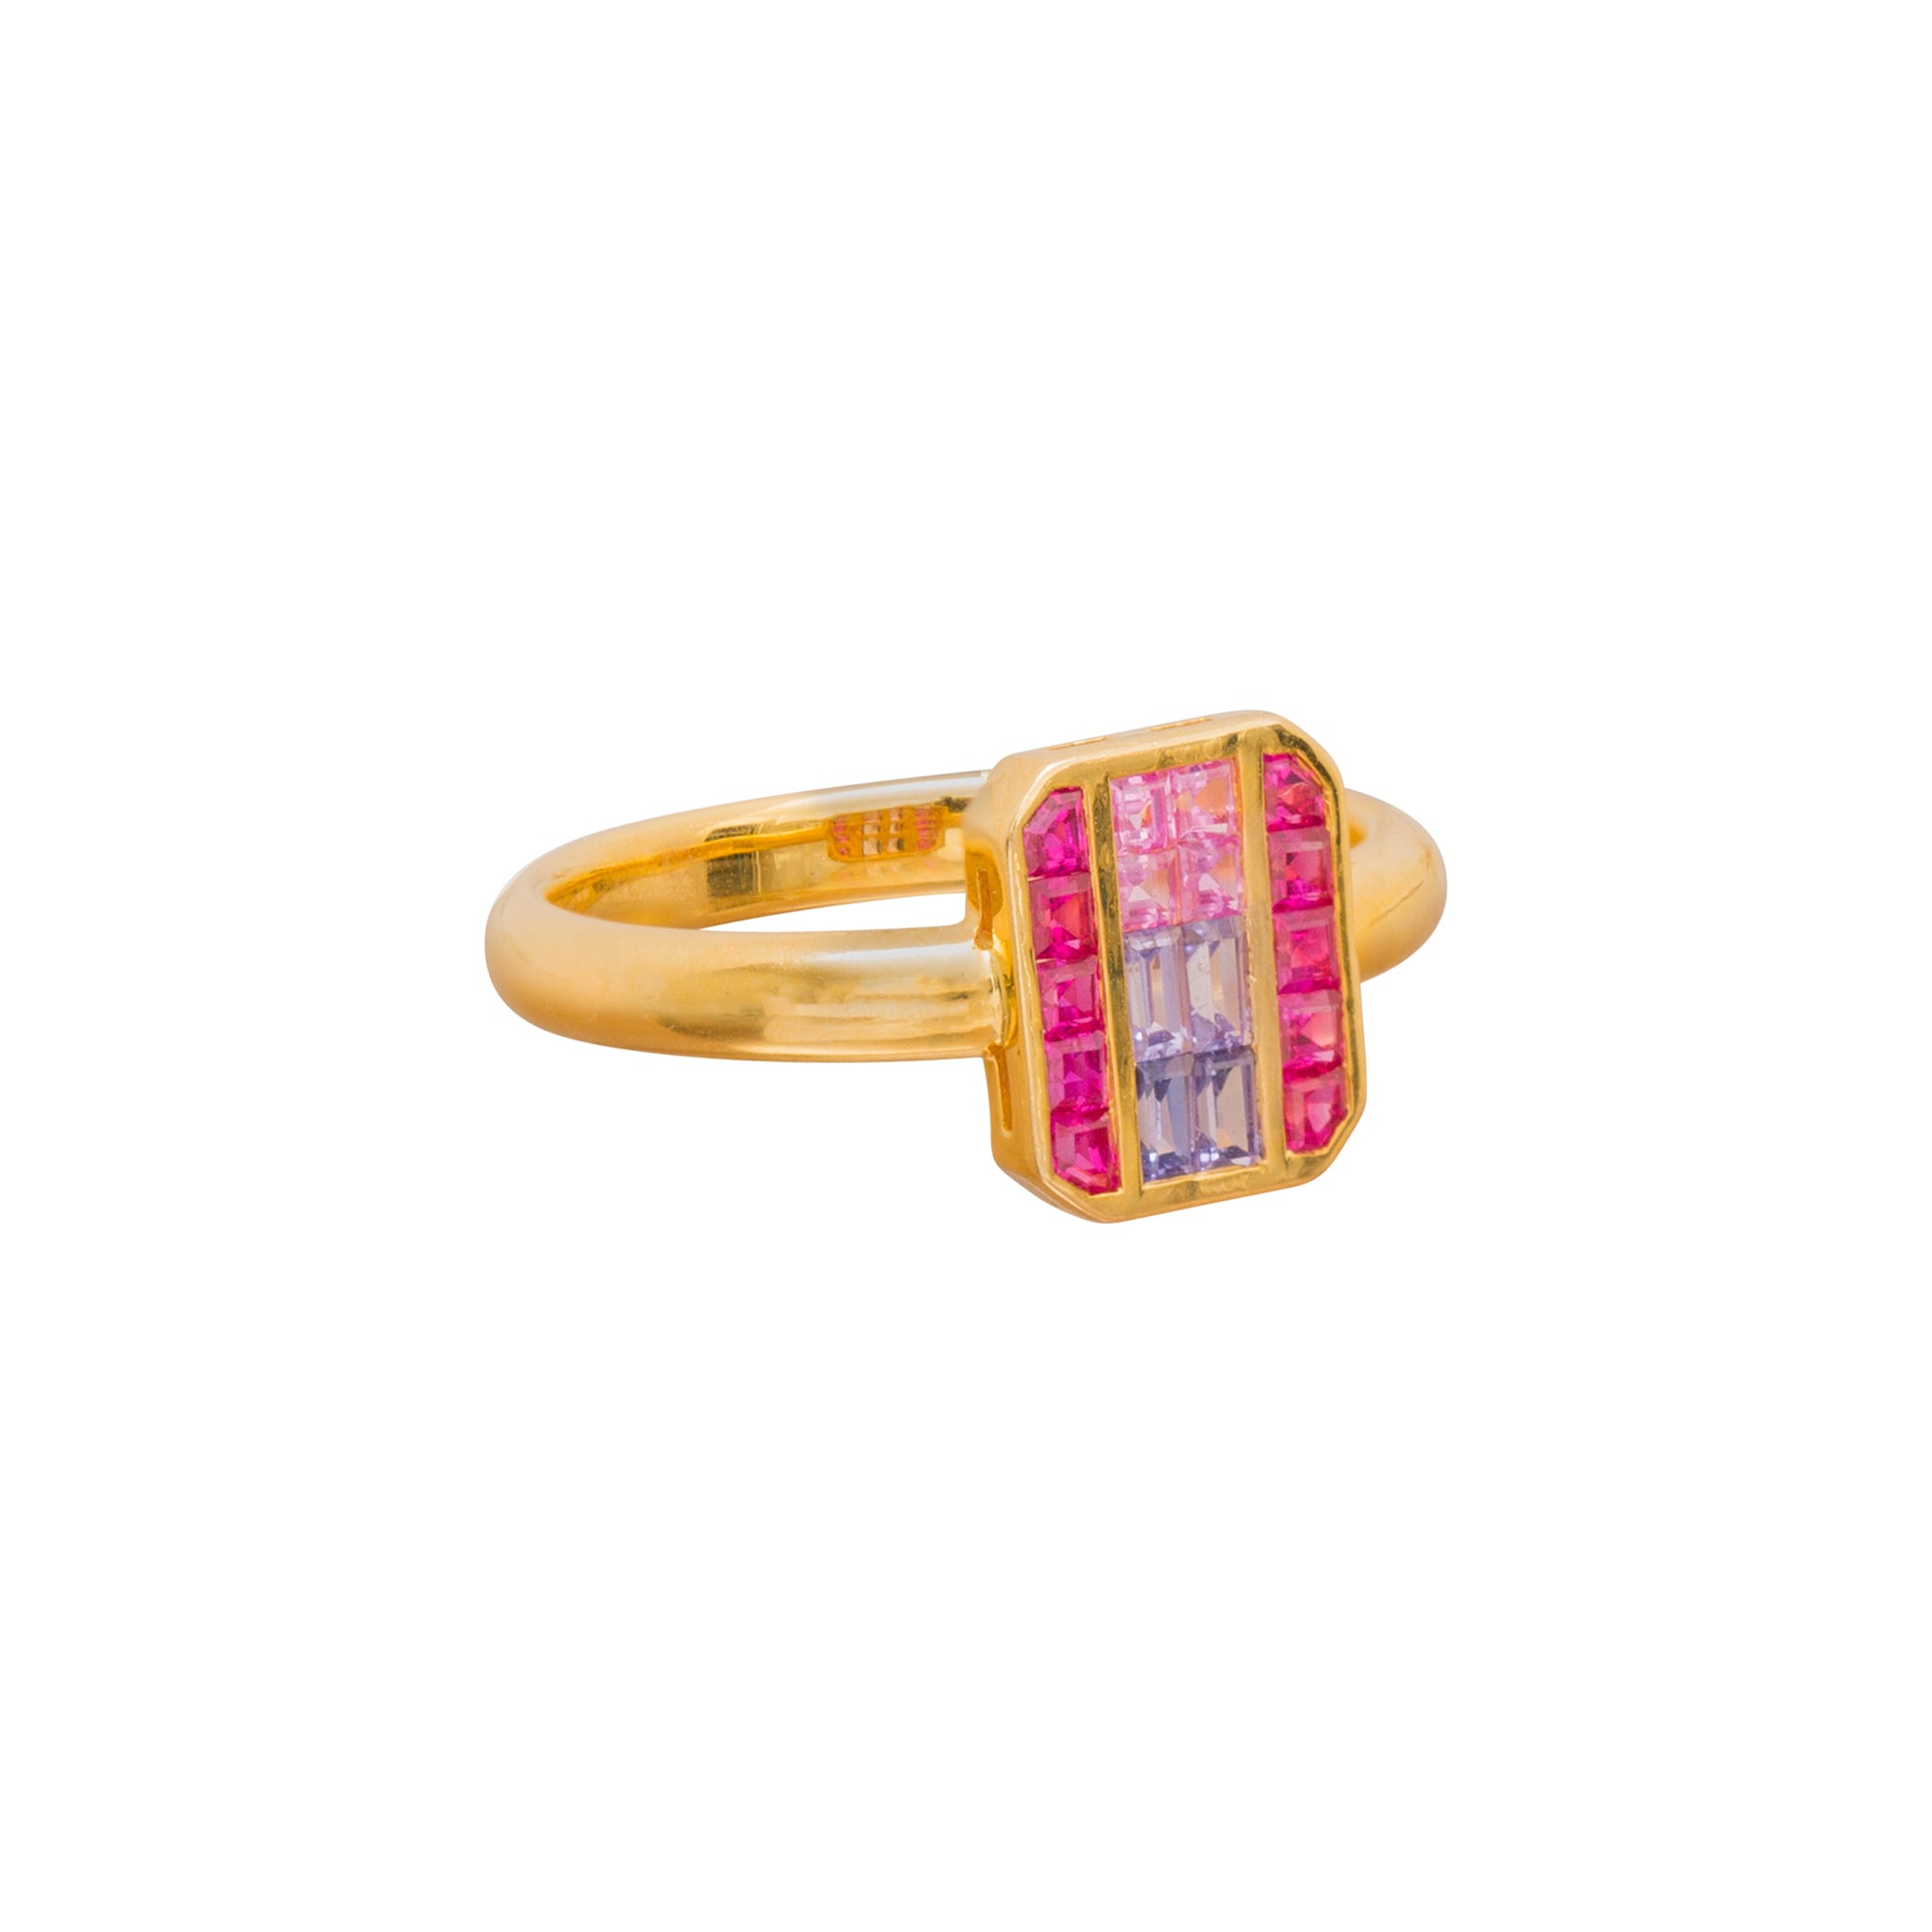 Ruby and Fancy Sapphire Cushion Ring by Kavant & Sharart for Broken English Jewelry